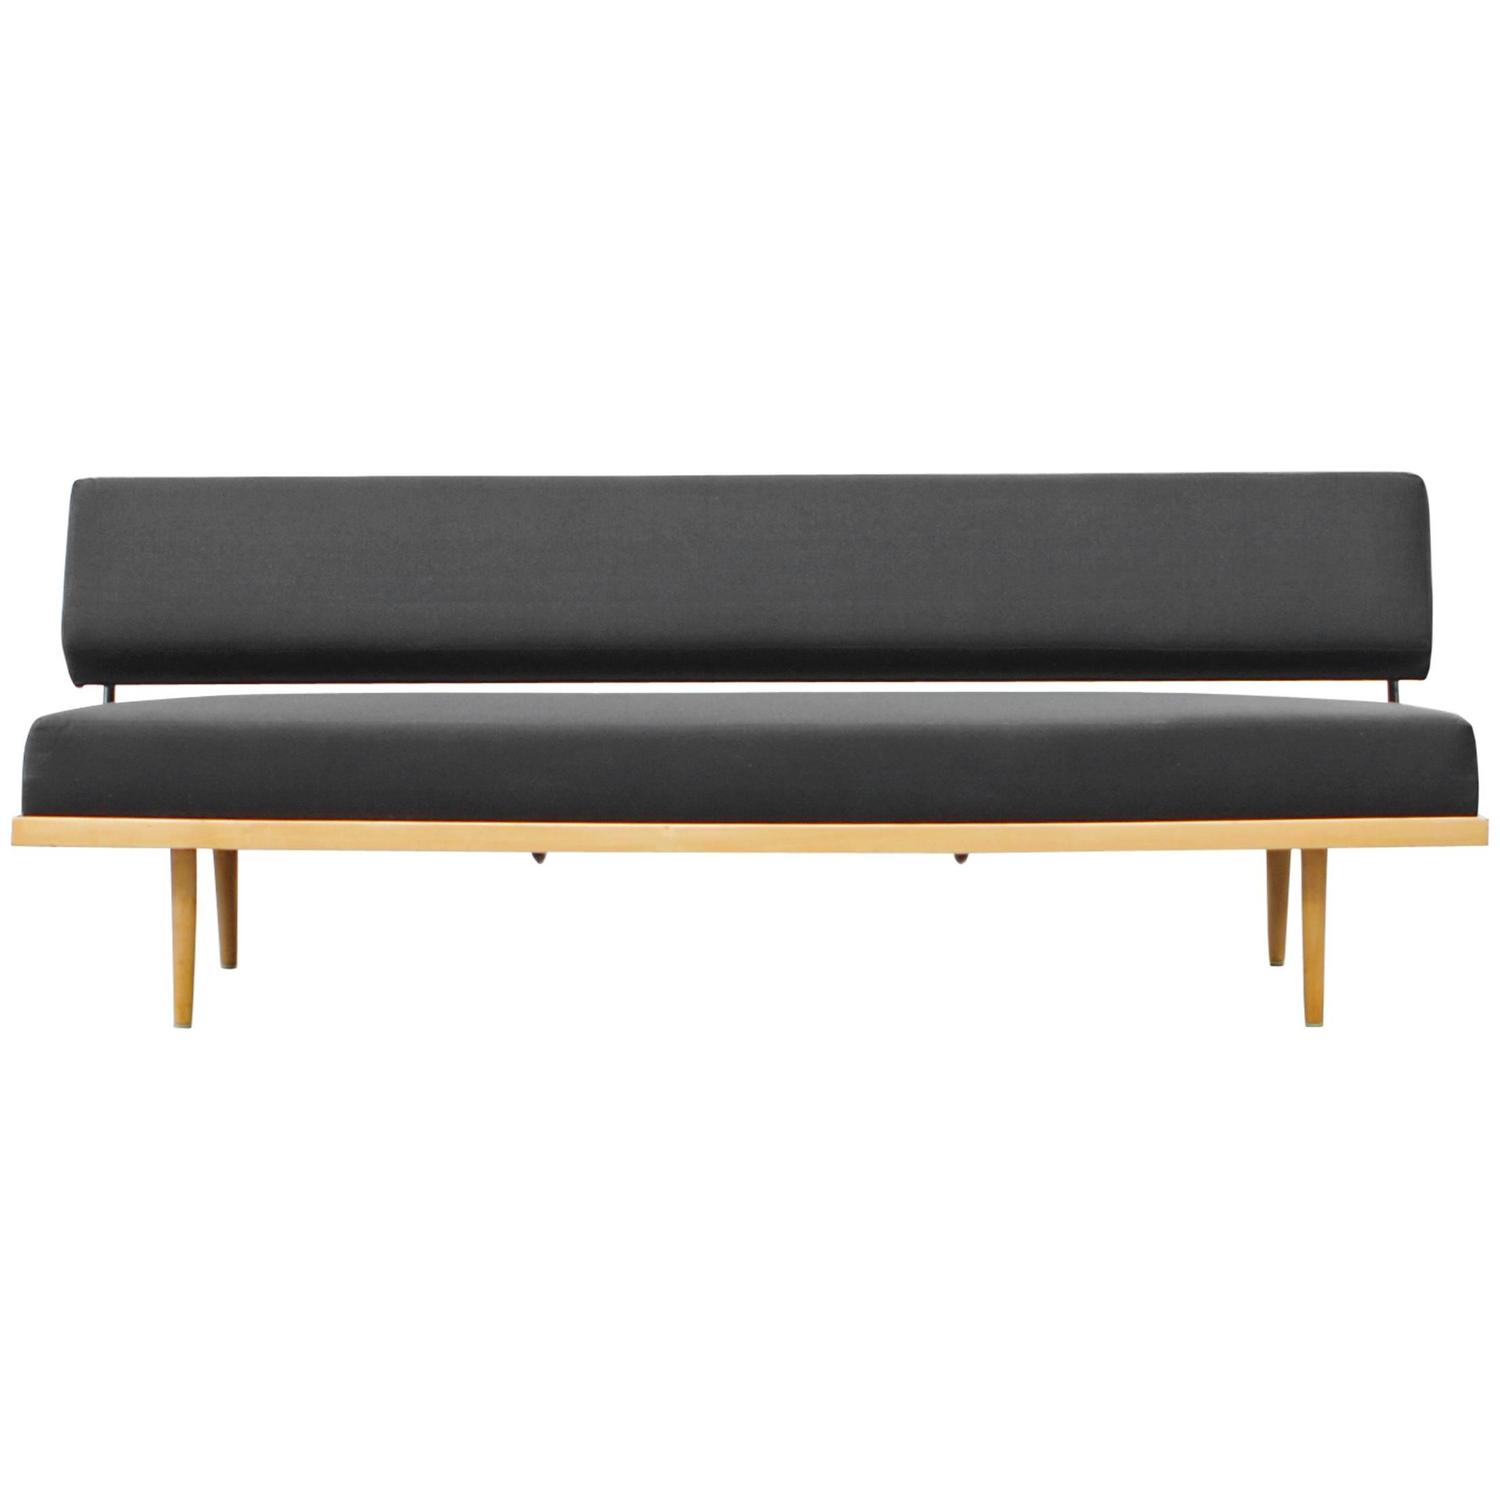 Daybed Sofa by Florence Knoll for Knoll International 1958 at